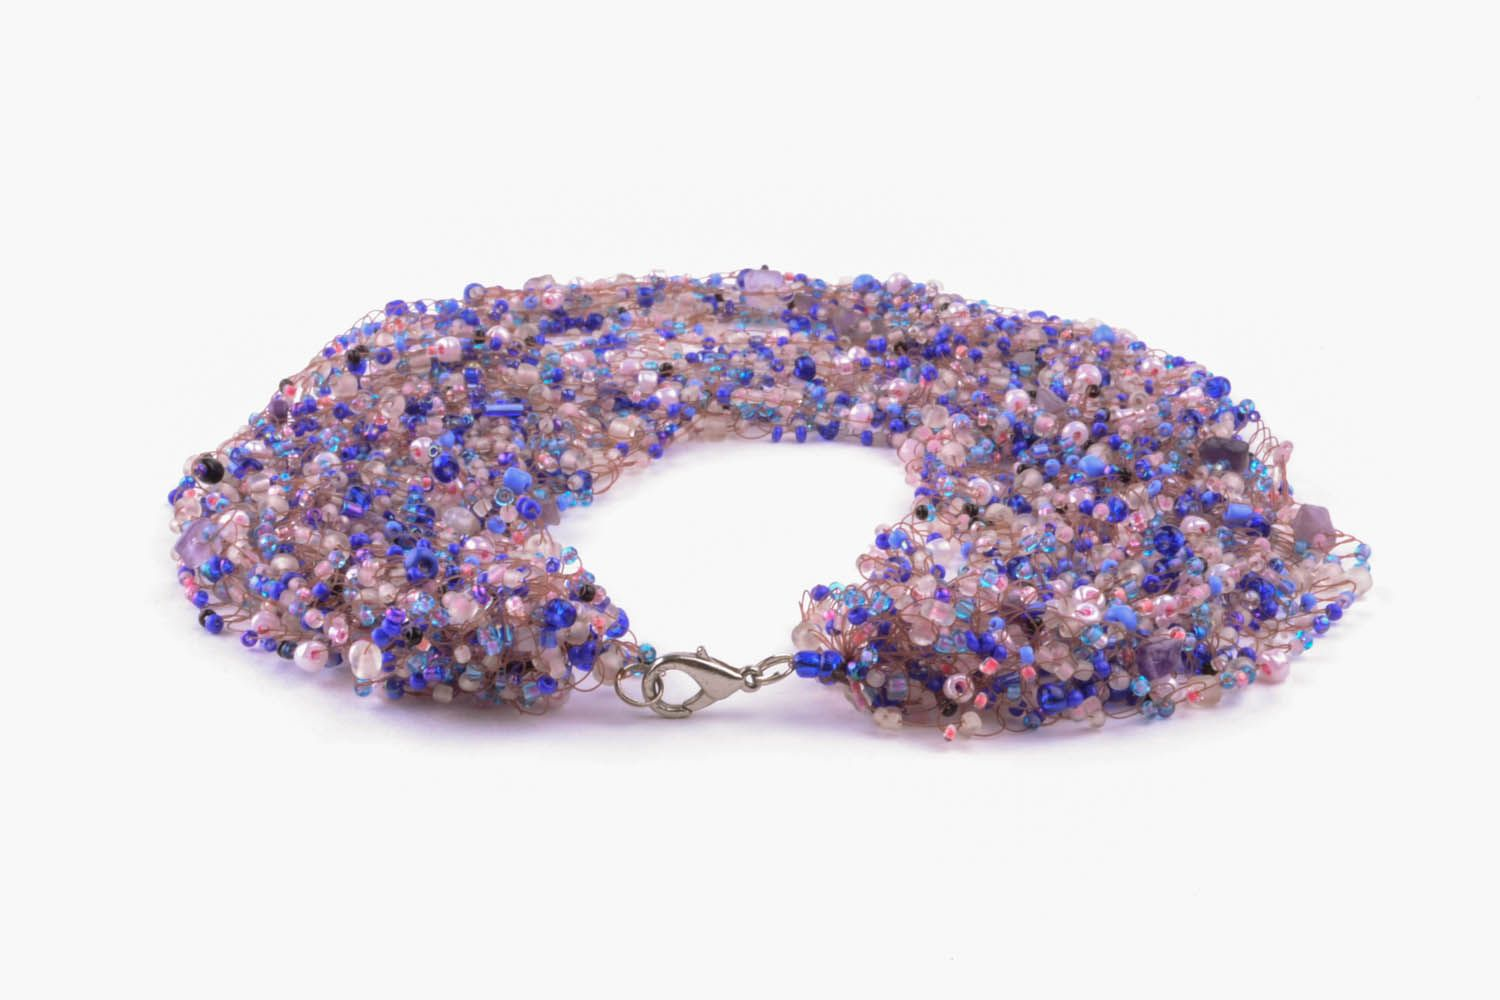 Violet necklace made of beads and natural stones photo 4